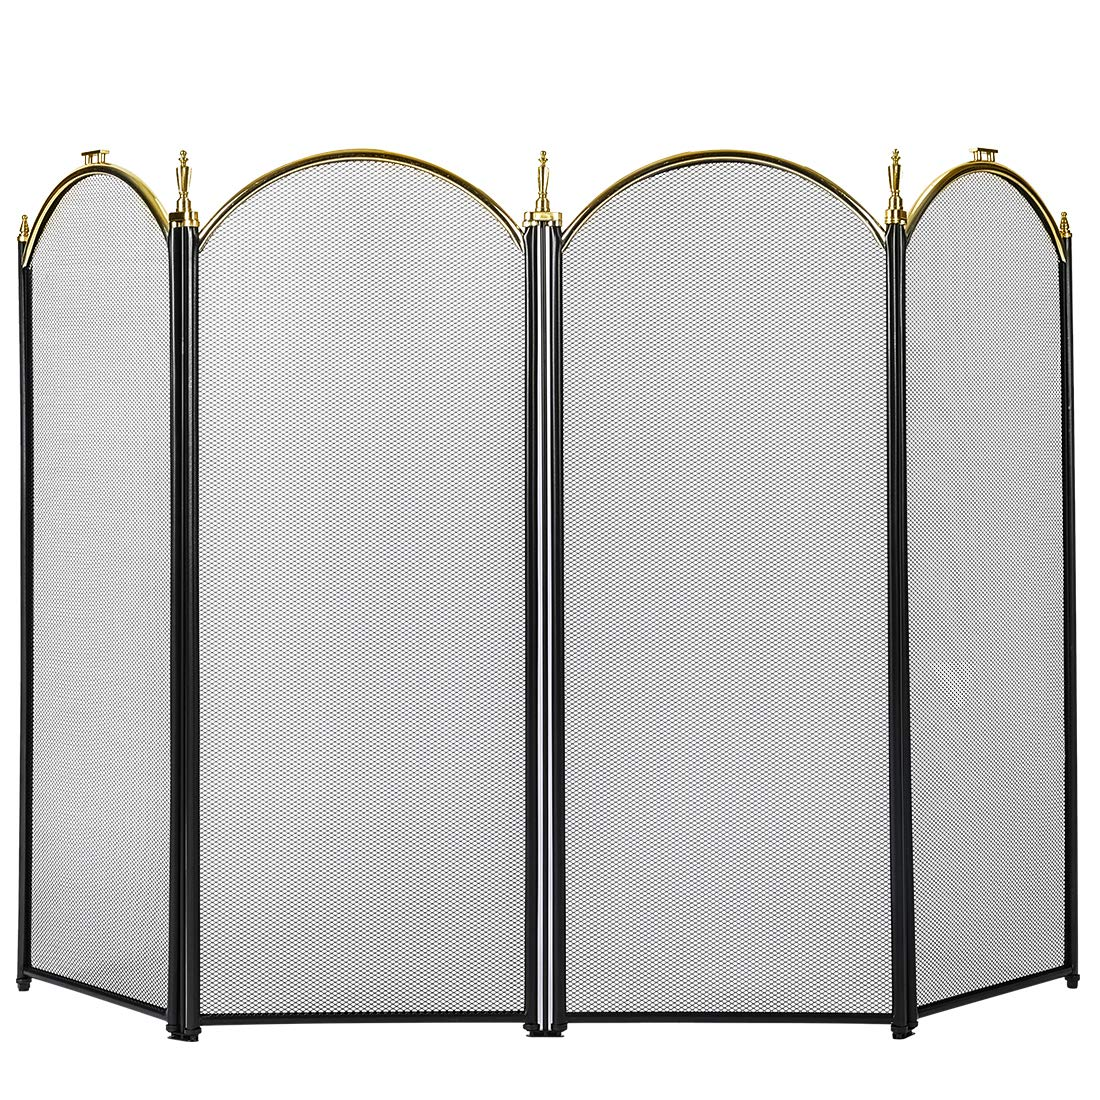 VIVOHOME 52 Inch Wide Iron Fence 4 Panel Decorative Black Mesh Fireplace Screen by VIVOHOME